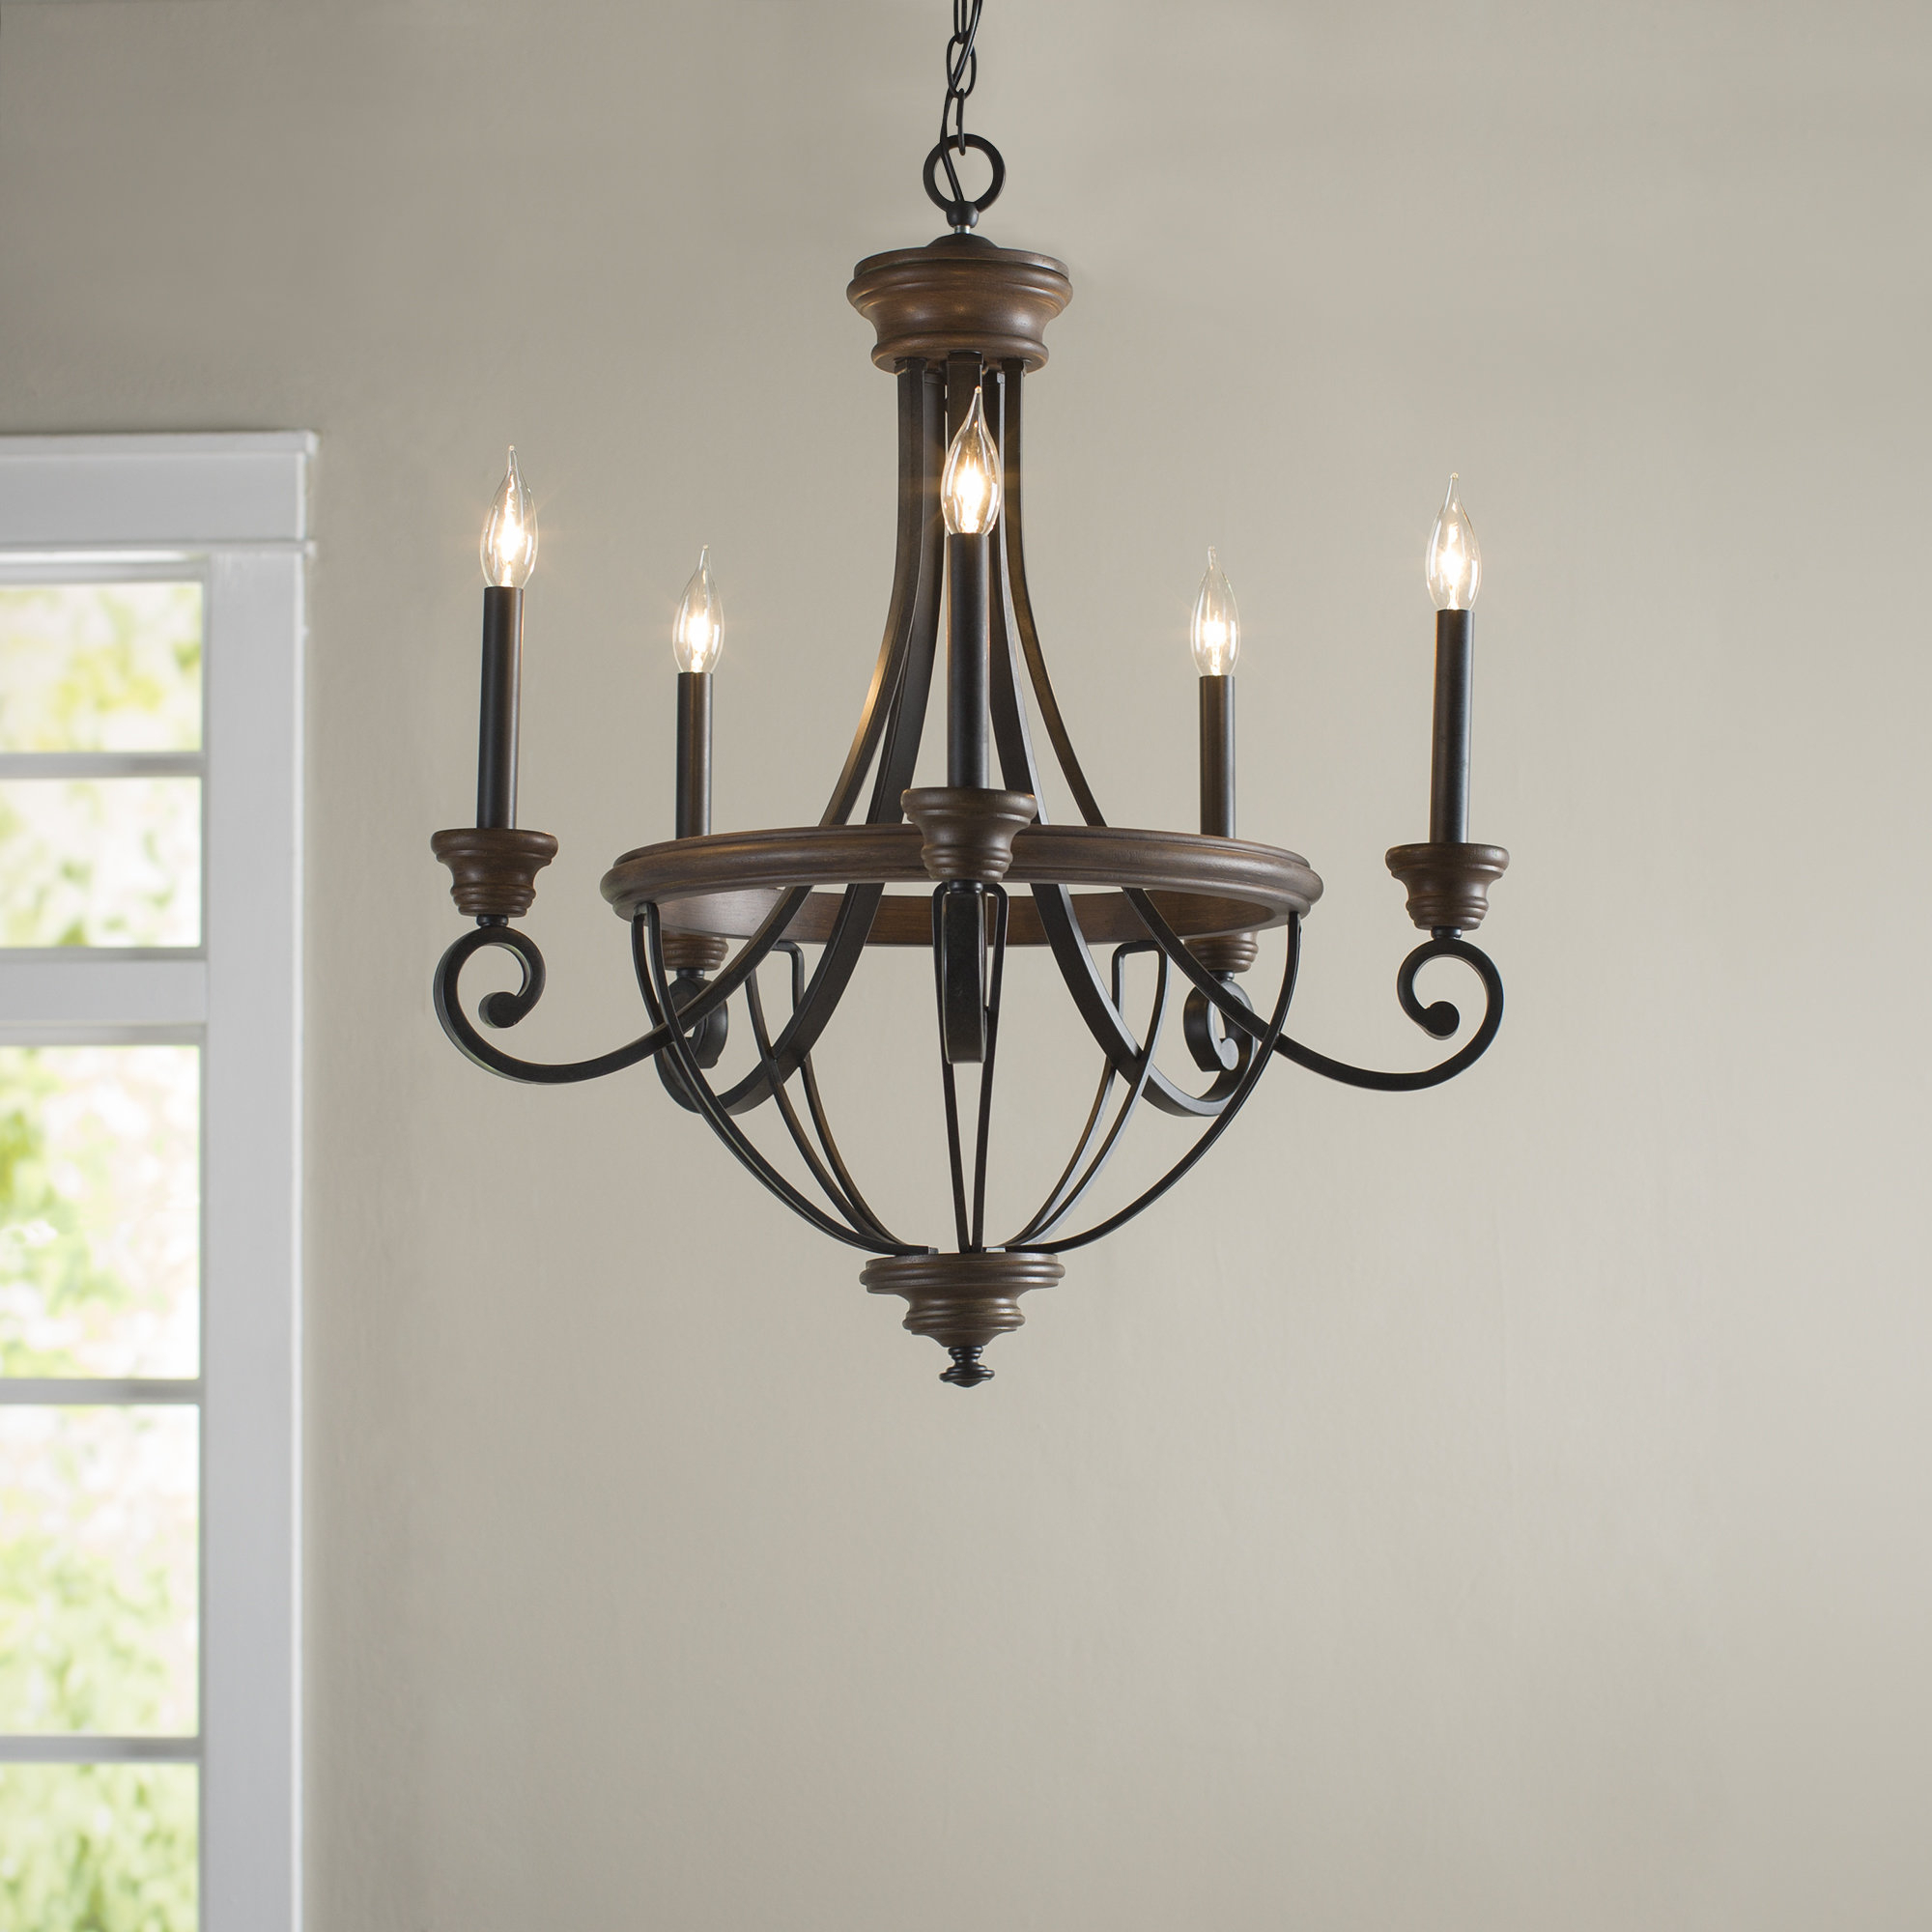 Laurel Foundry Modern Farmhouse Nanteuil 5 Light Empire Chandelier Pertaining To Recent Kenna 5 Light Empire Chandeliers (Gallery 7 of 20)